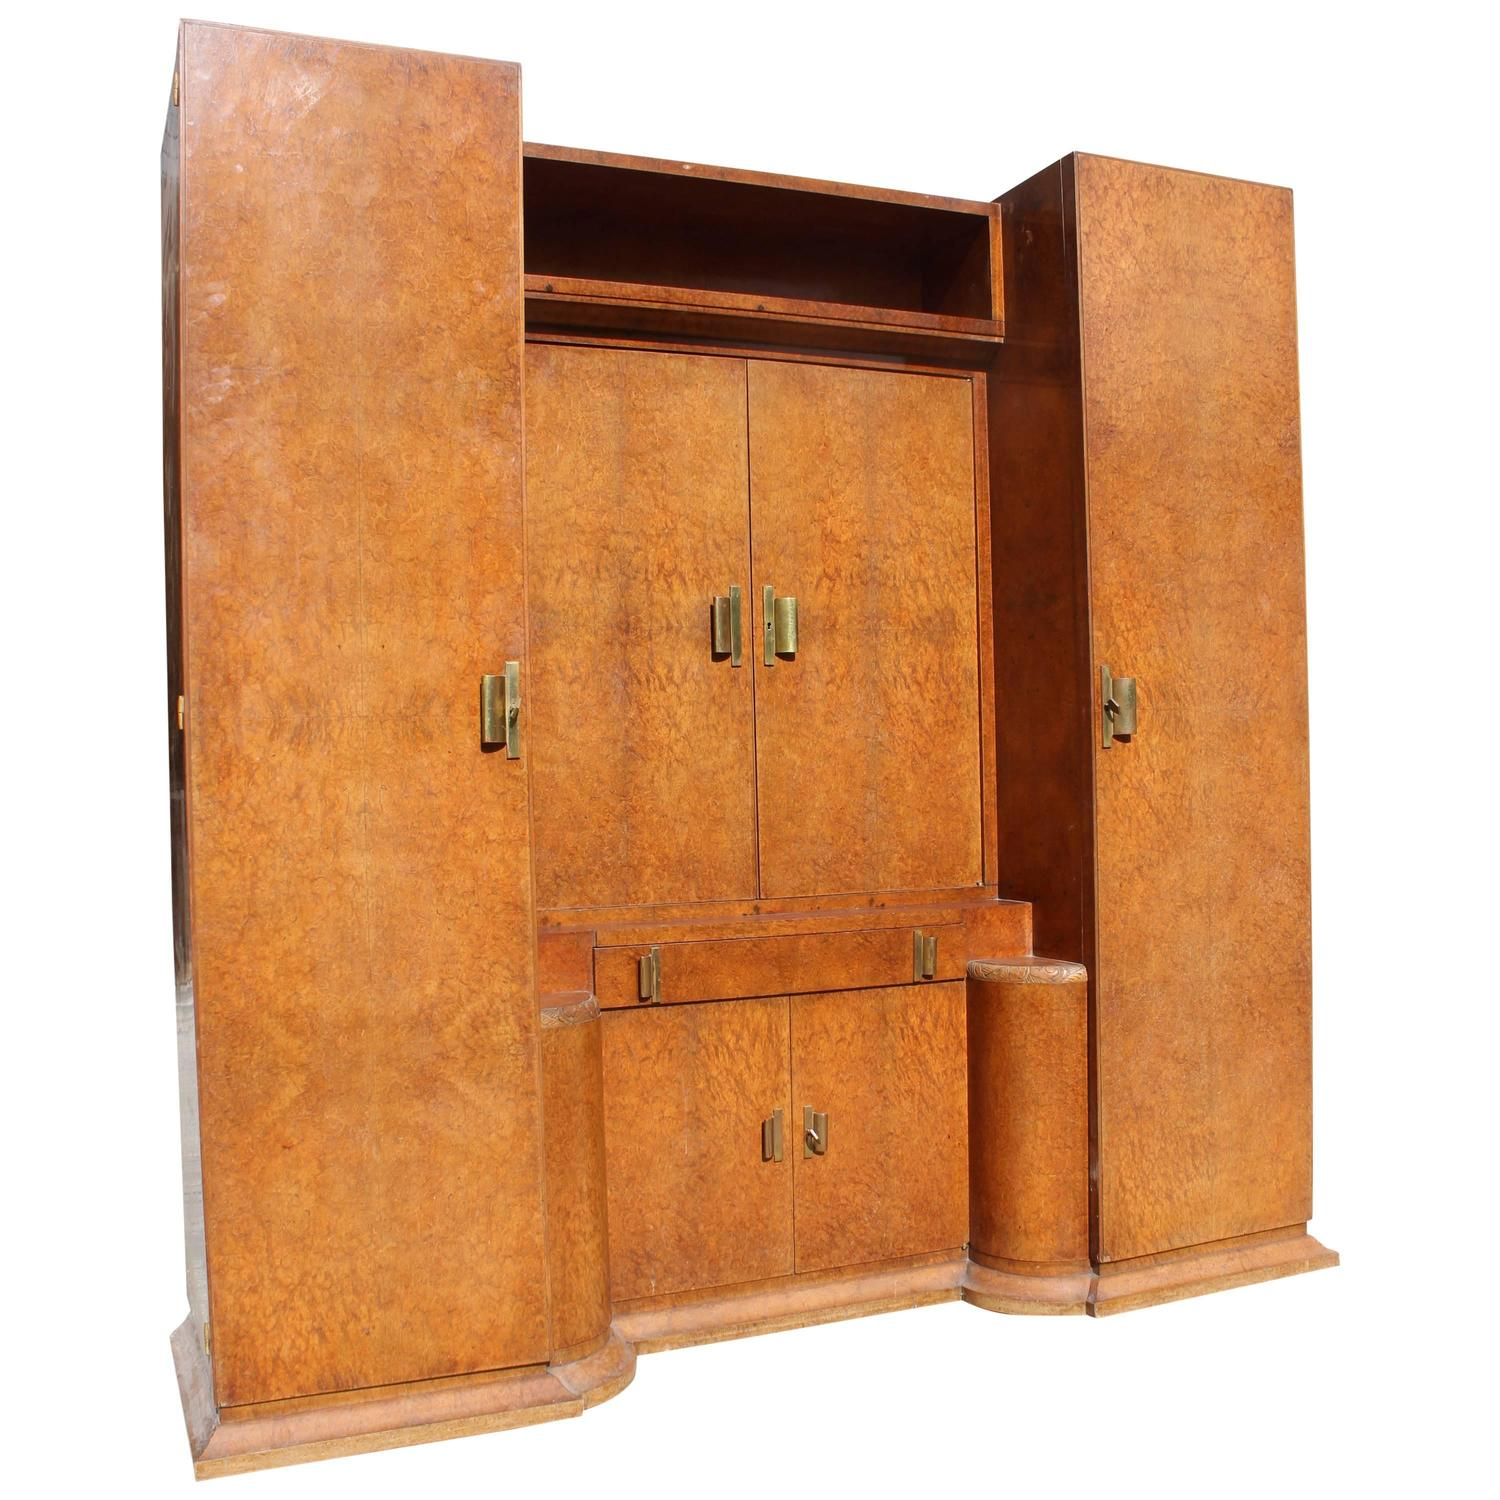 massive french art deco designer burl amboyna armoire with vanity circa 1940s for sale at 1stdibs. Black Bedroom Furniture Sets. Home Design Ideas